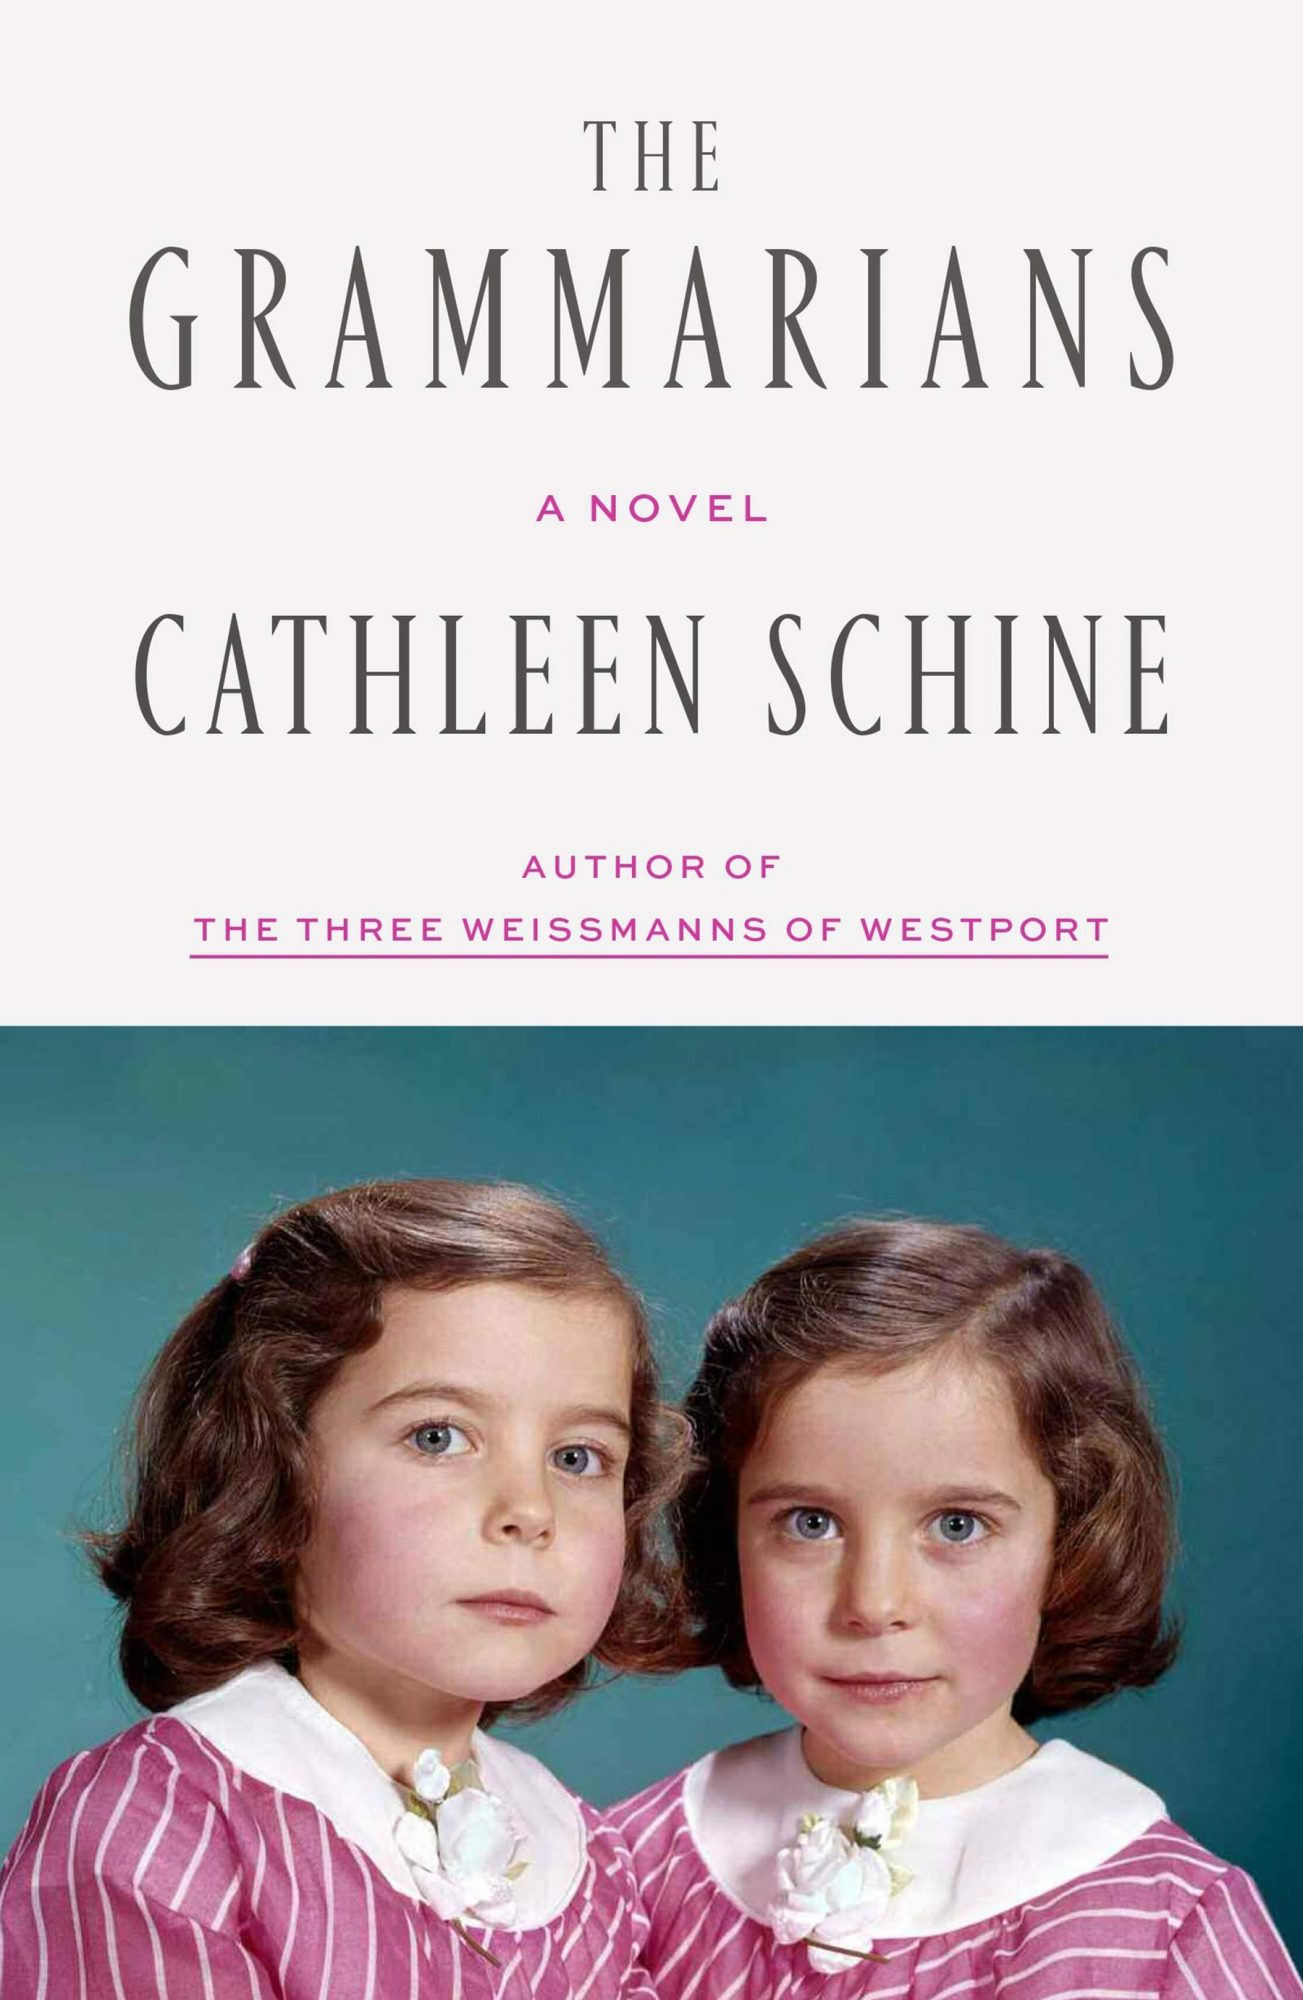 The Grammarians by Cathleen SchinePublisher: Sarah Crichton Books